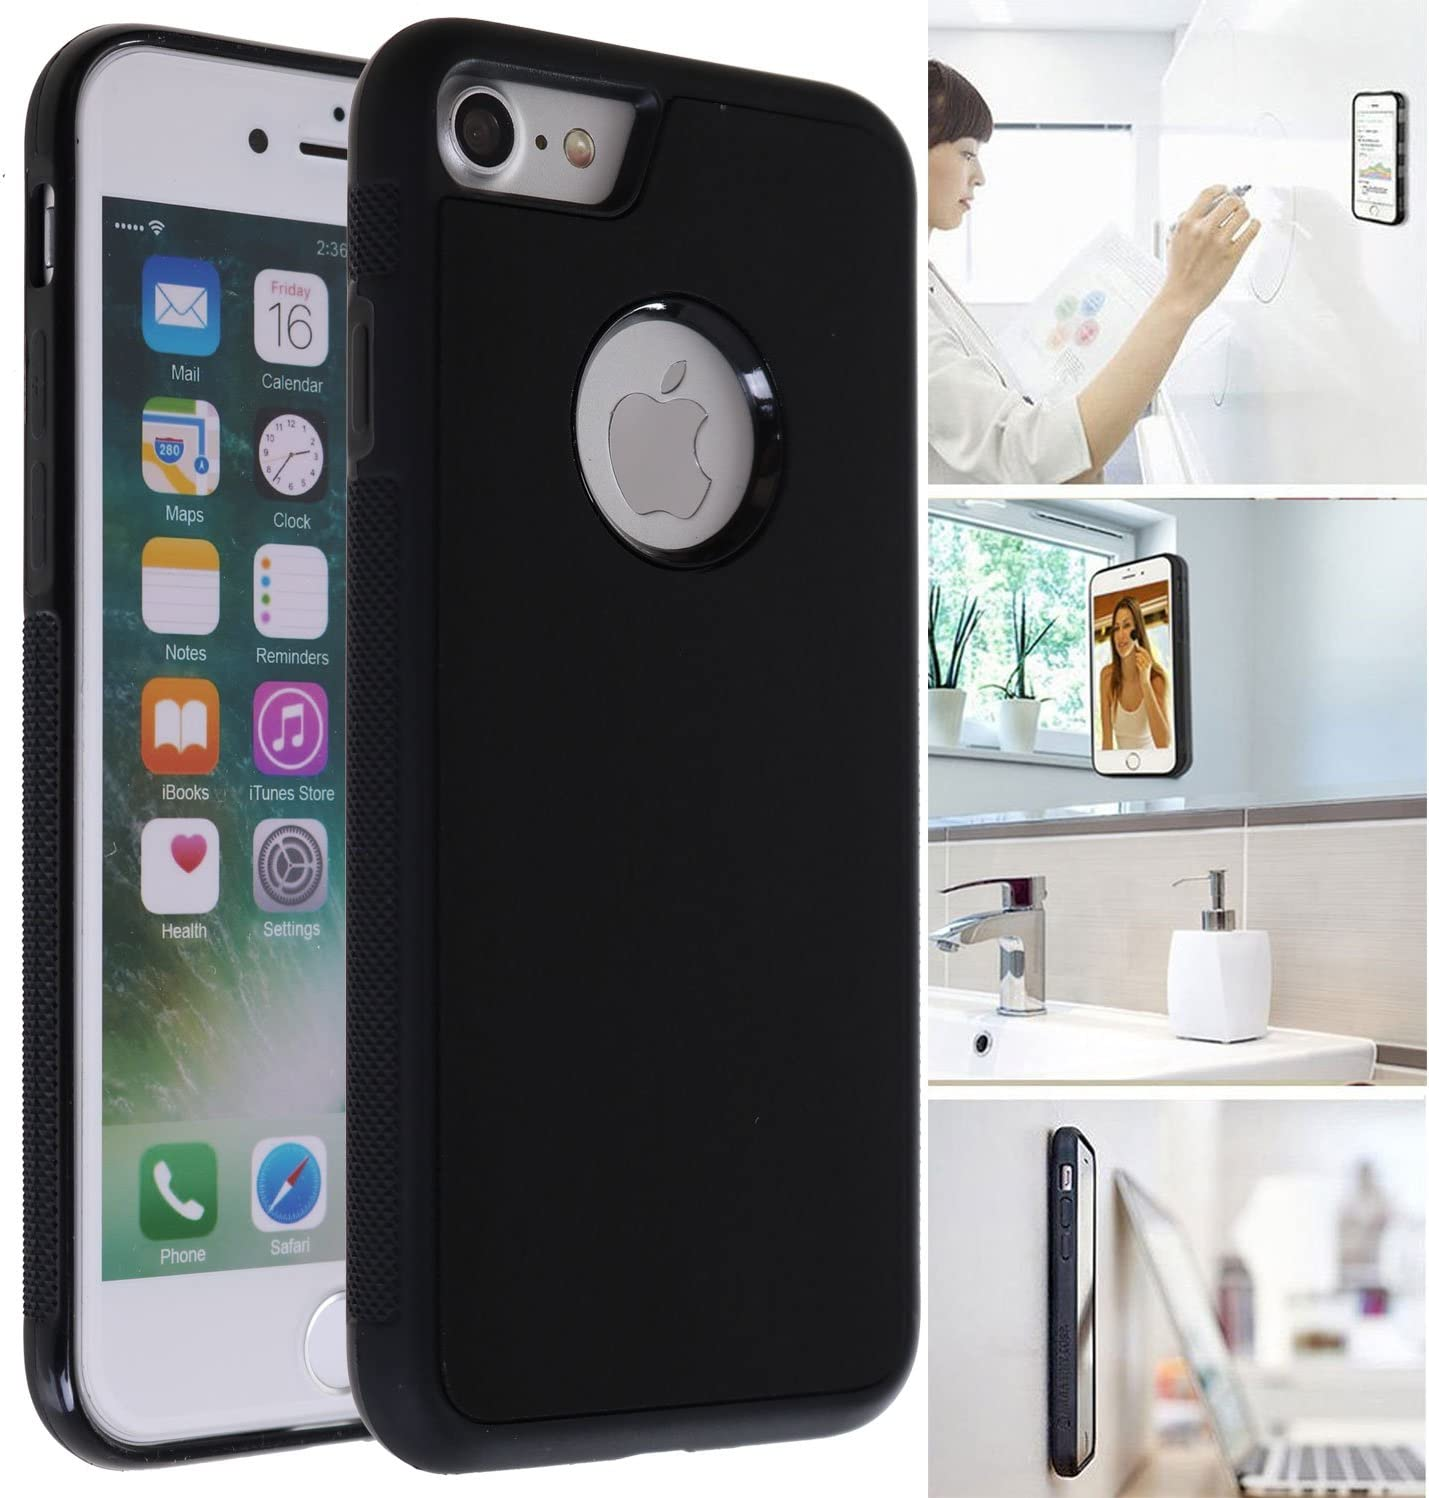 [ Monca ] Anti Gravity Cellphone Case [Black] Magical Nano Technology Stick to Wall, Glass, Whiteboards, Tile, Smooth Flat Surfaces (Goat case for iPhone 7)